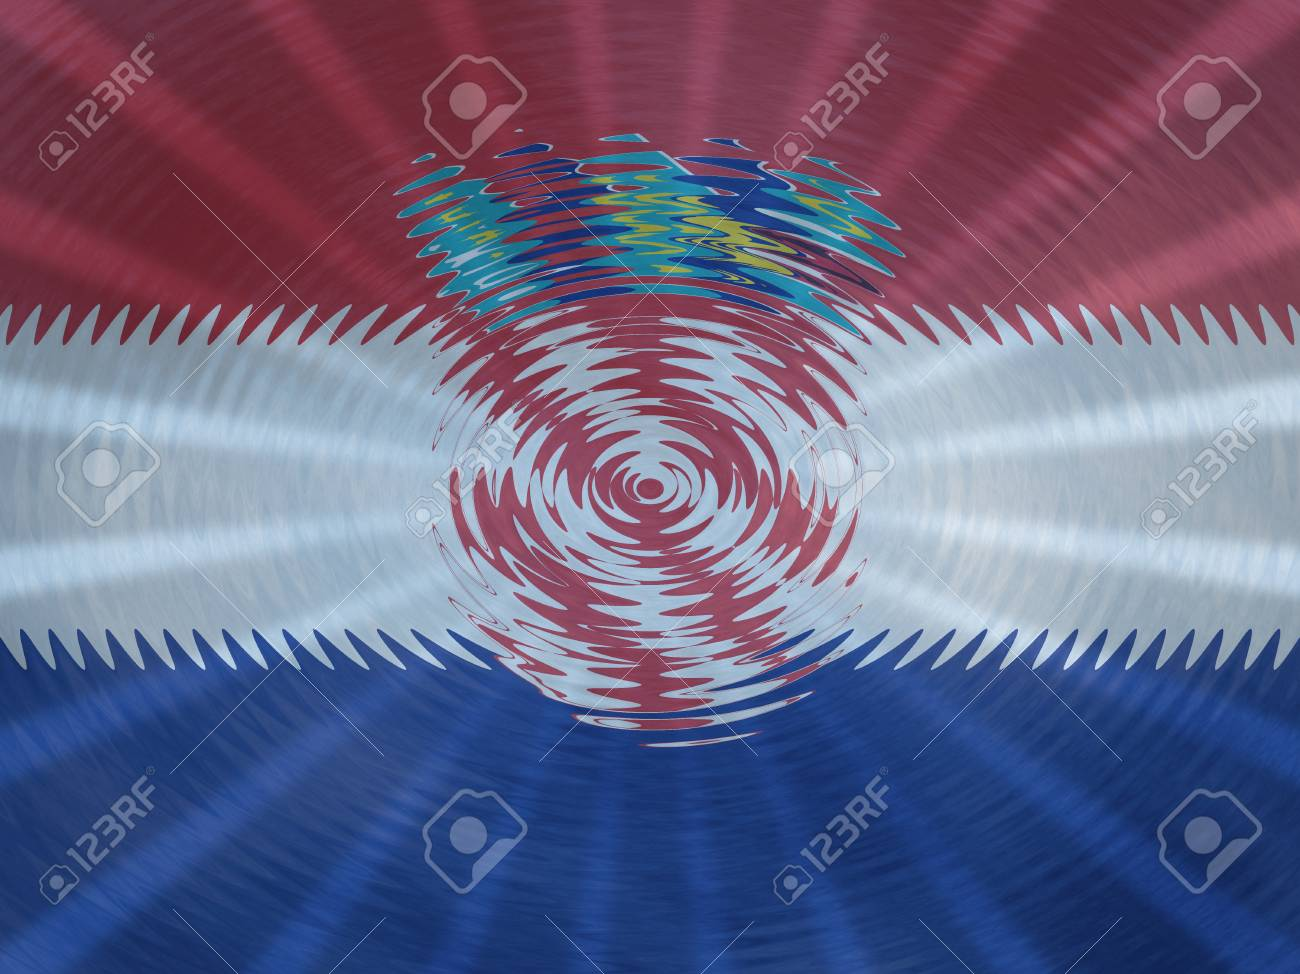 croatia flag background with ripples and rays illustration stock